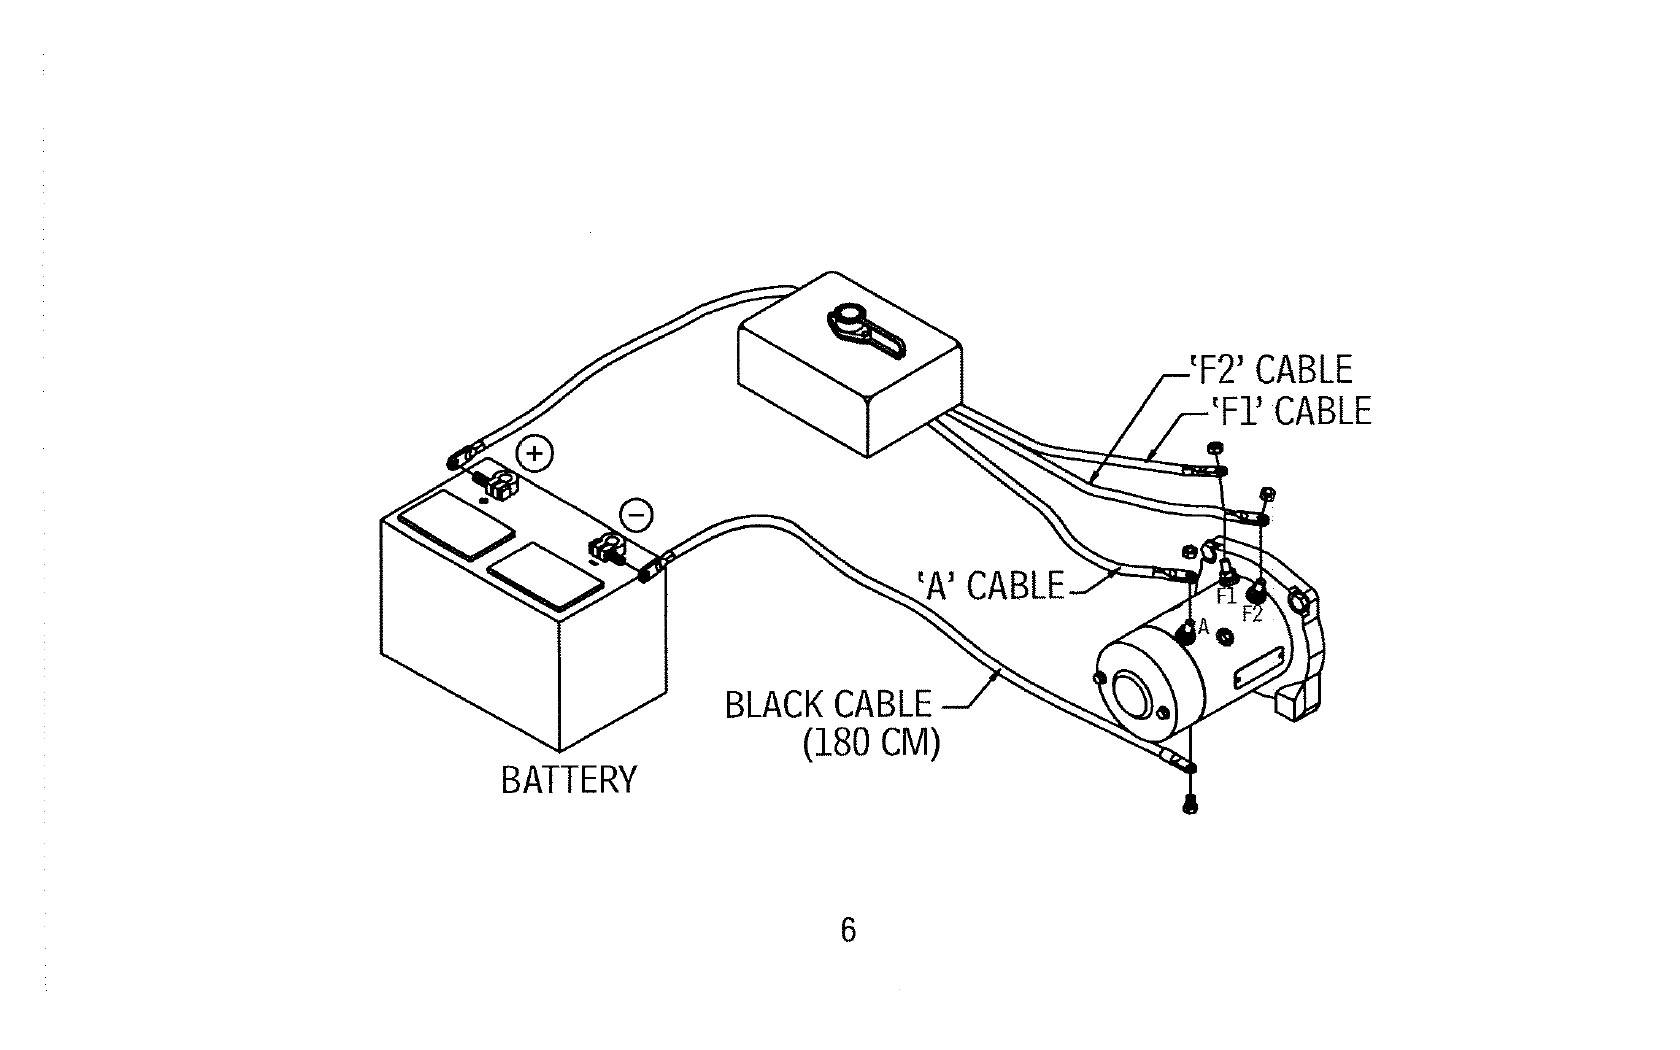 hight resolution of moving warn solenoid to engine bay fjc